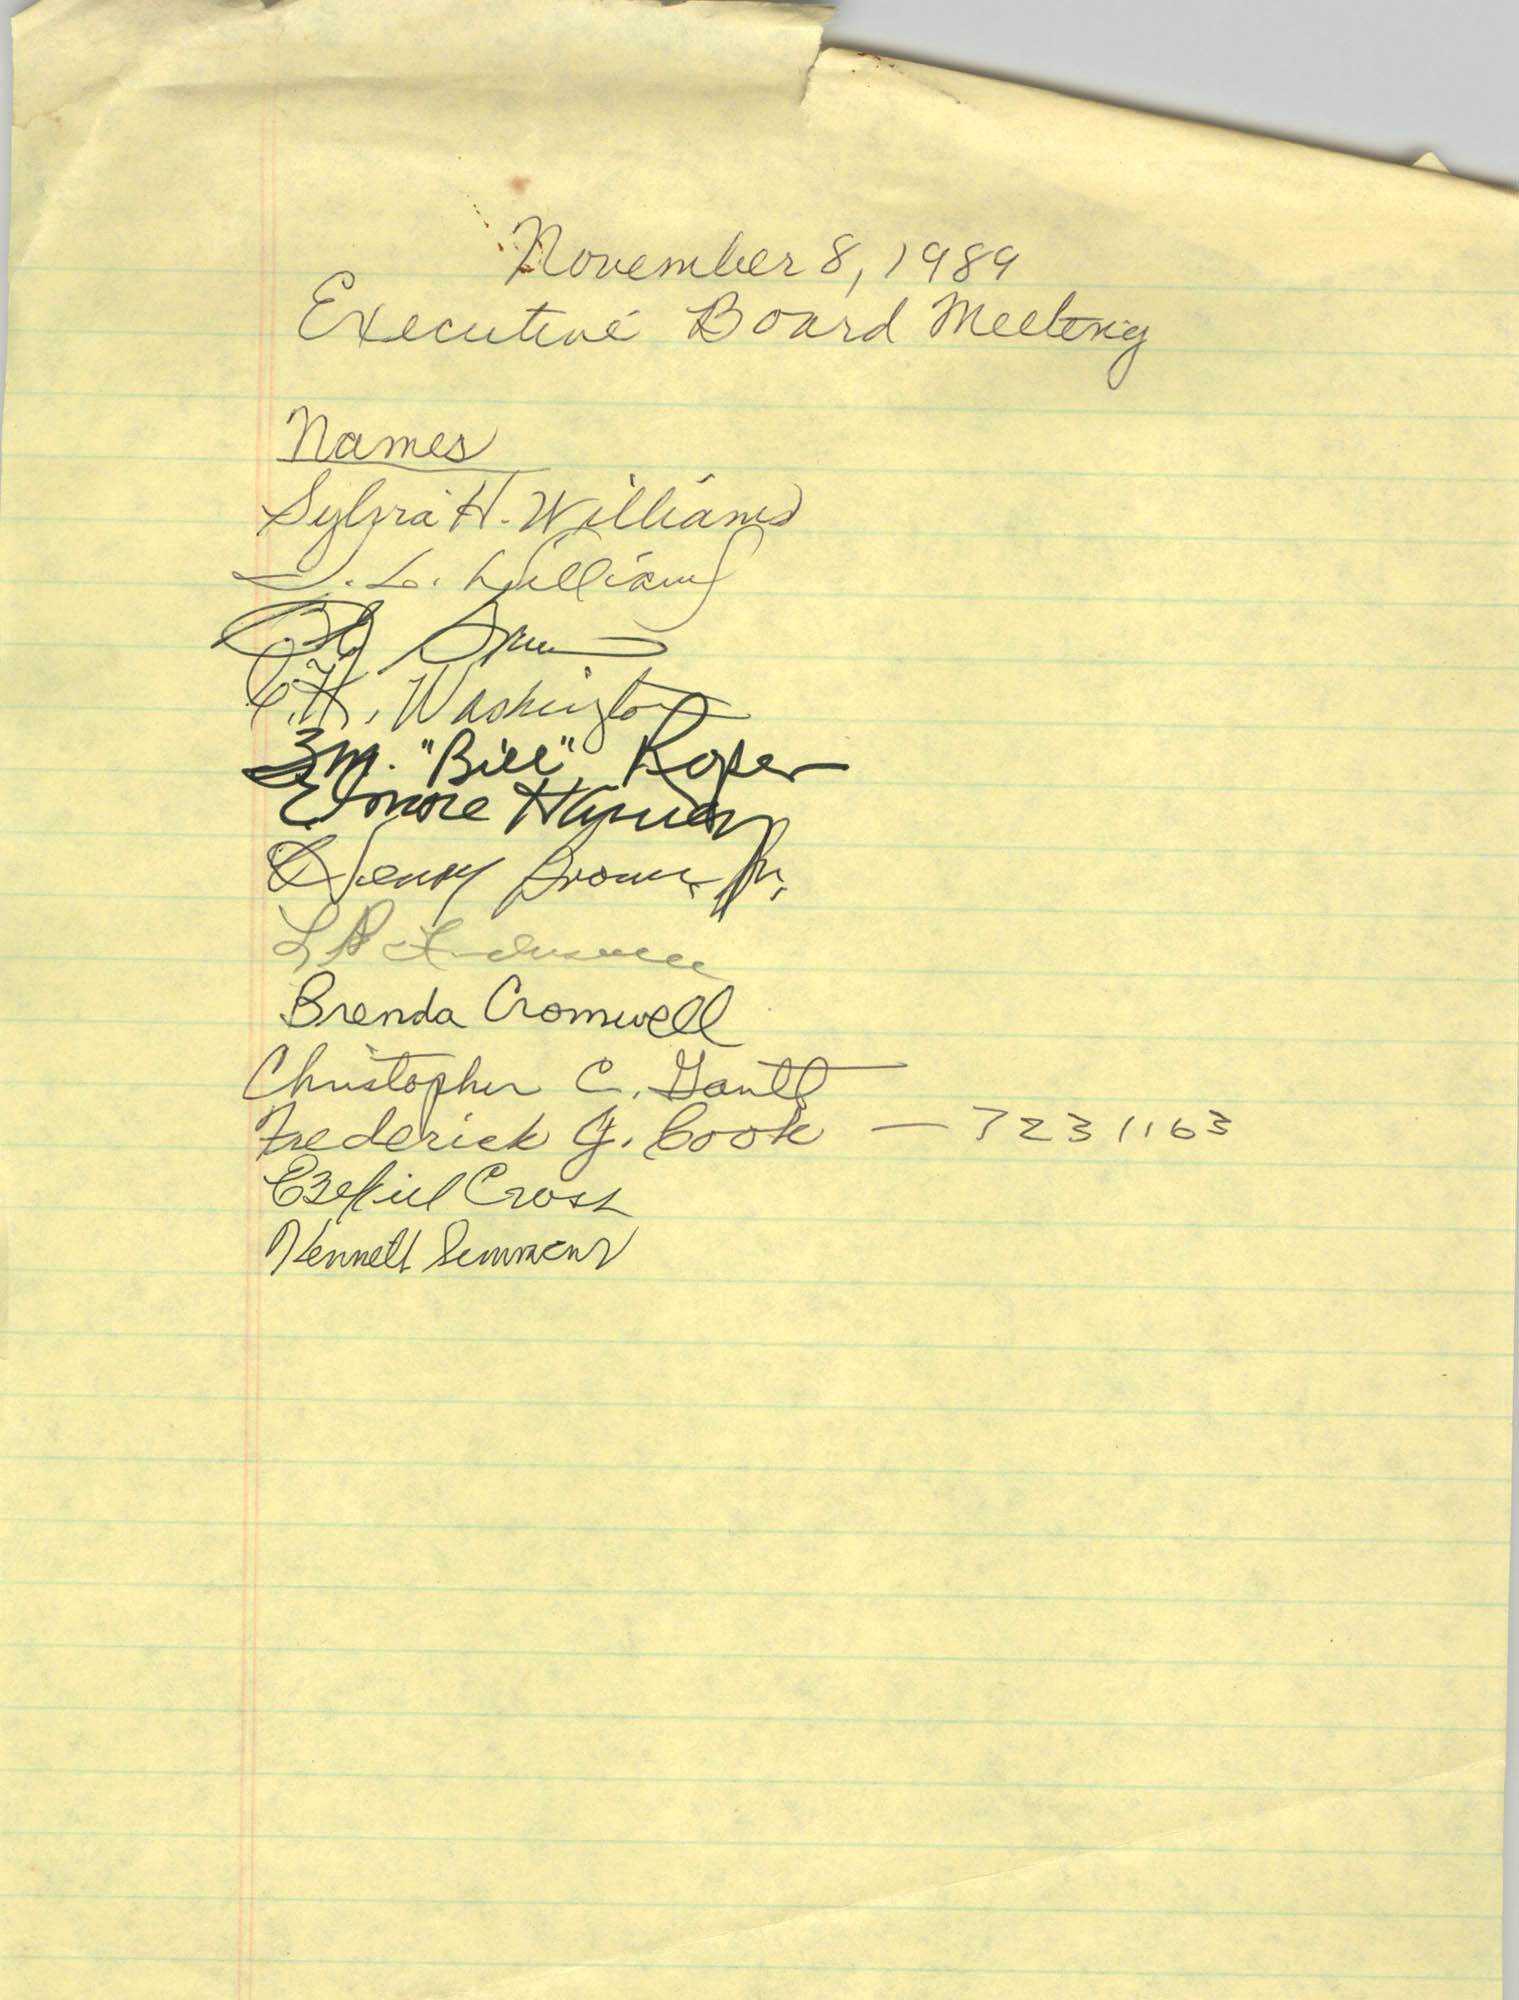 Sign-in Sheet, Charleston Branch of the NAACP, Executive Board Meeting, November 8, 1989